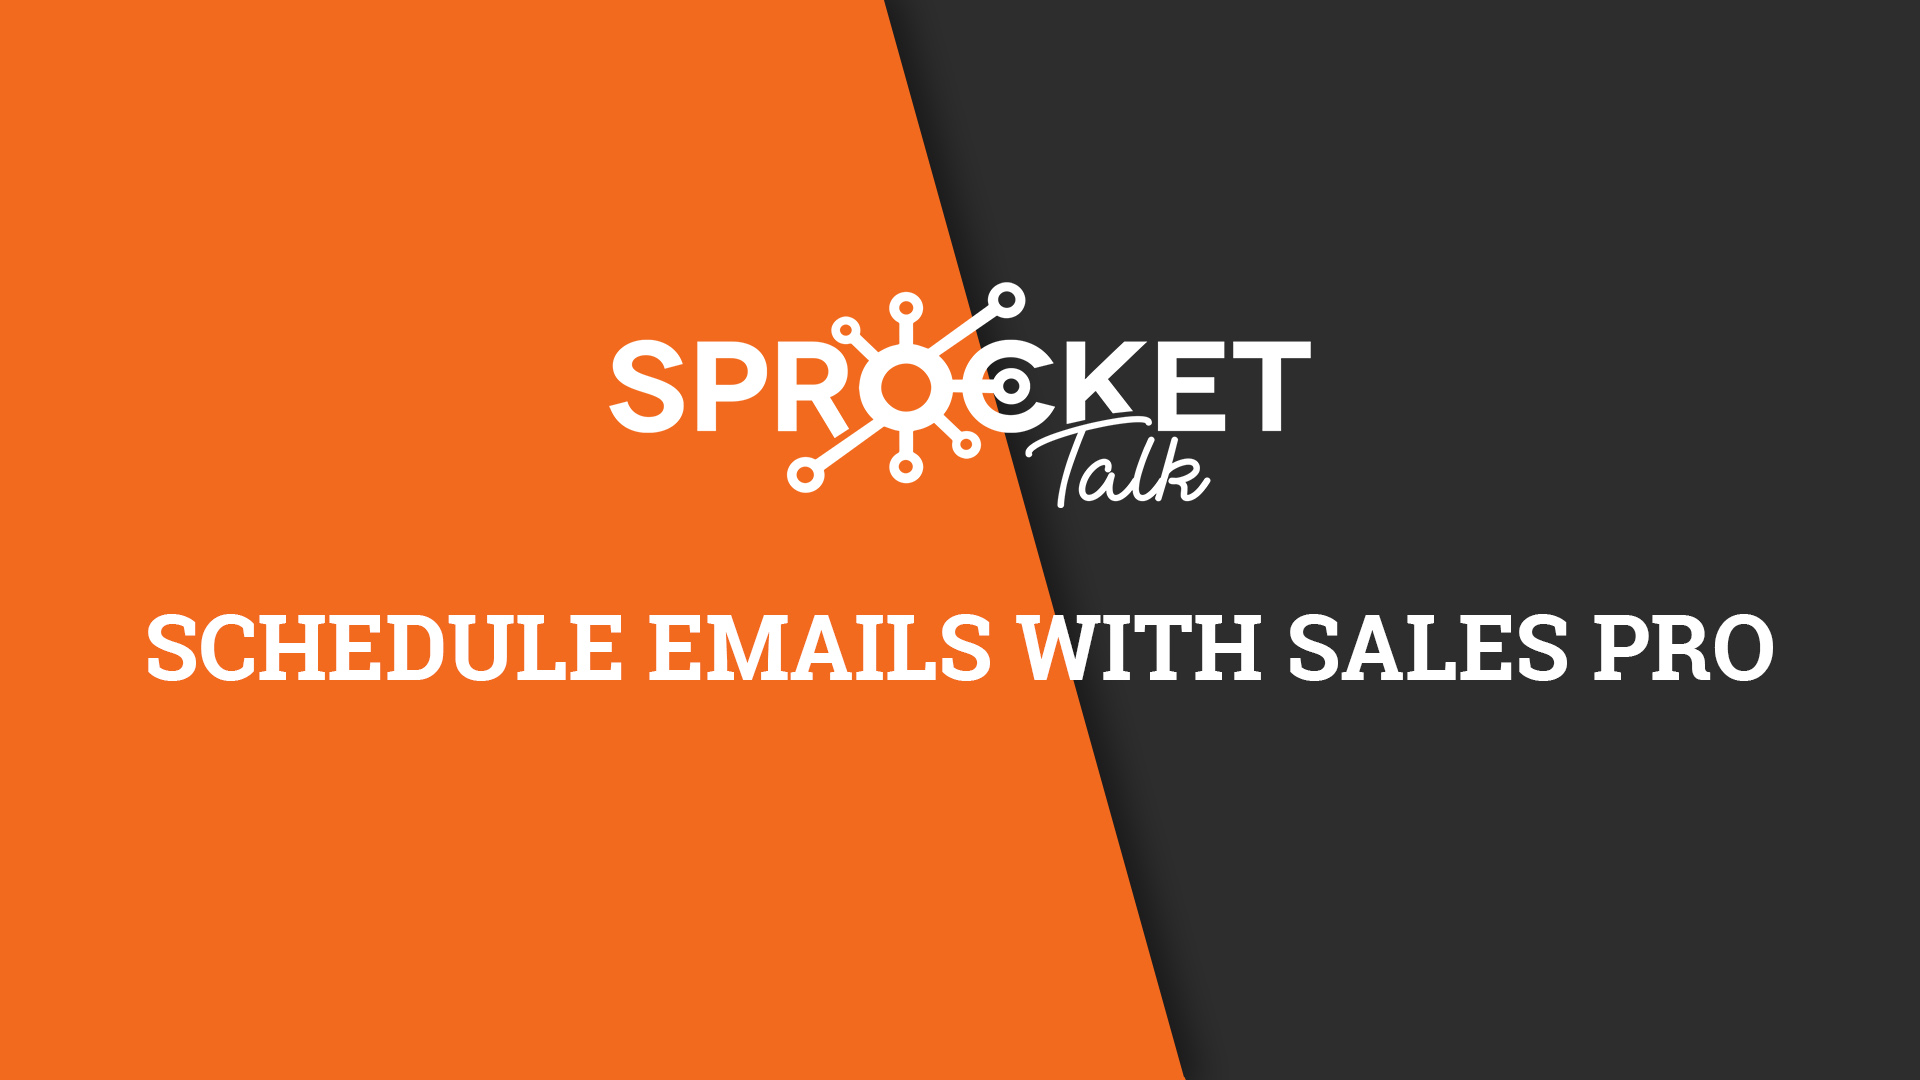 Schedule Emails With Sales Pro